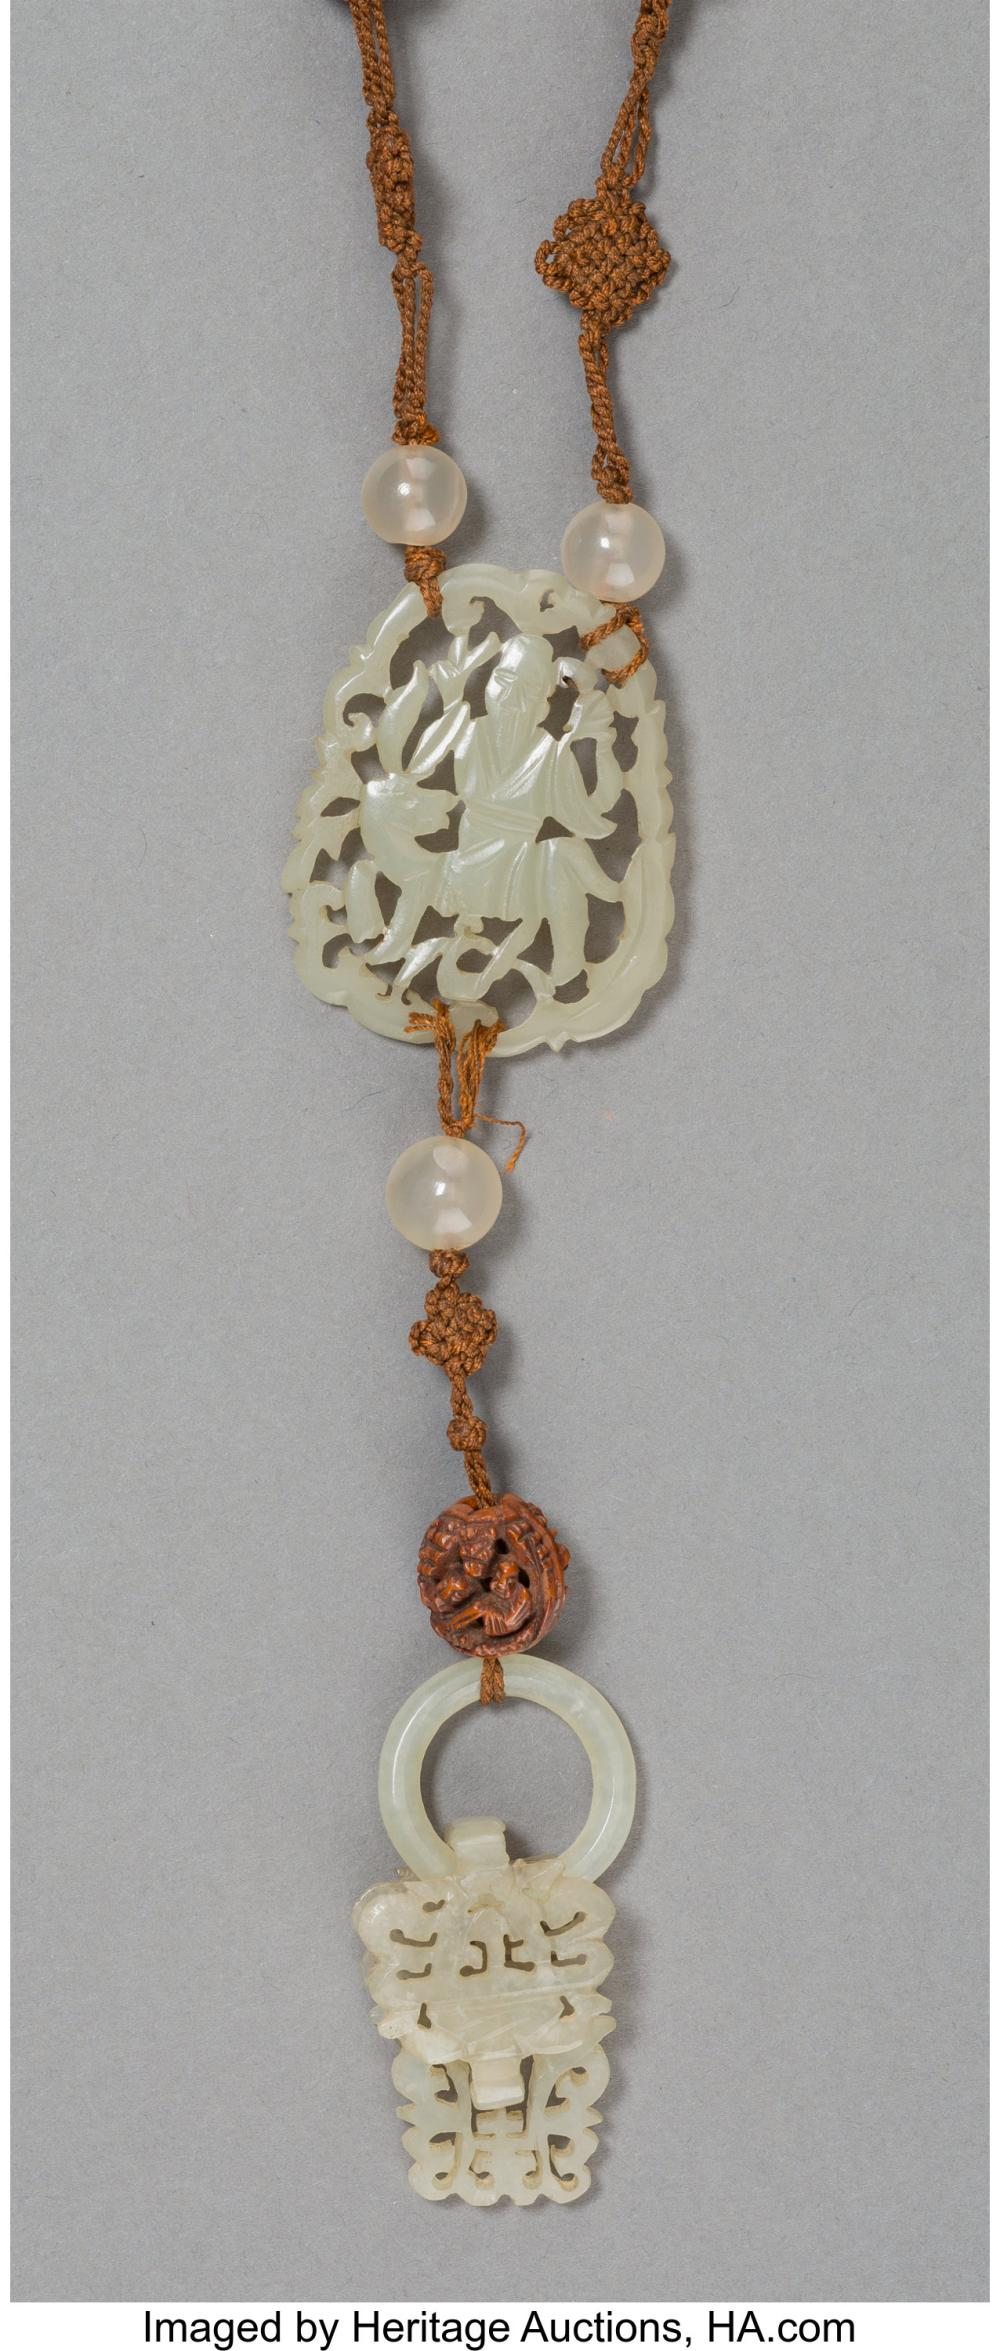 Lot 21266: A Chinese Carved Pale Jade and Boxwood Beaded Necklace 36 inches (91.4 cm)